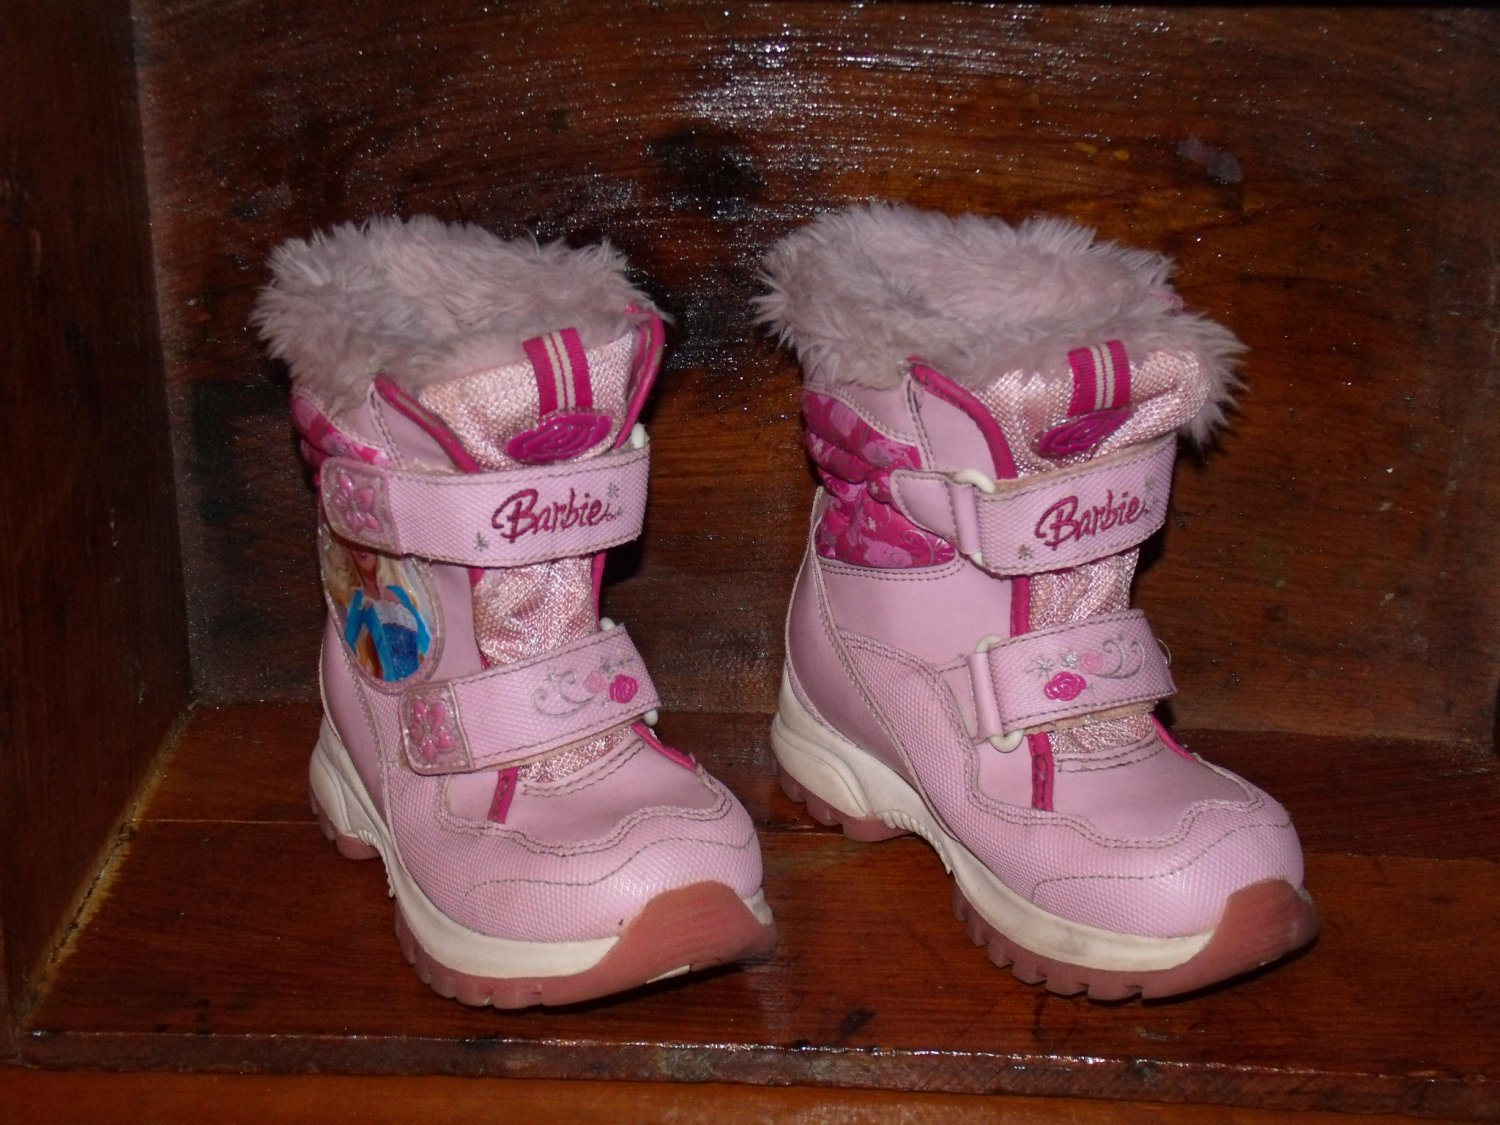 barbie boots for girls - photo #9